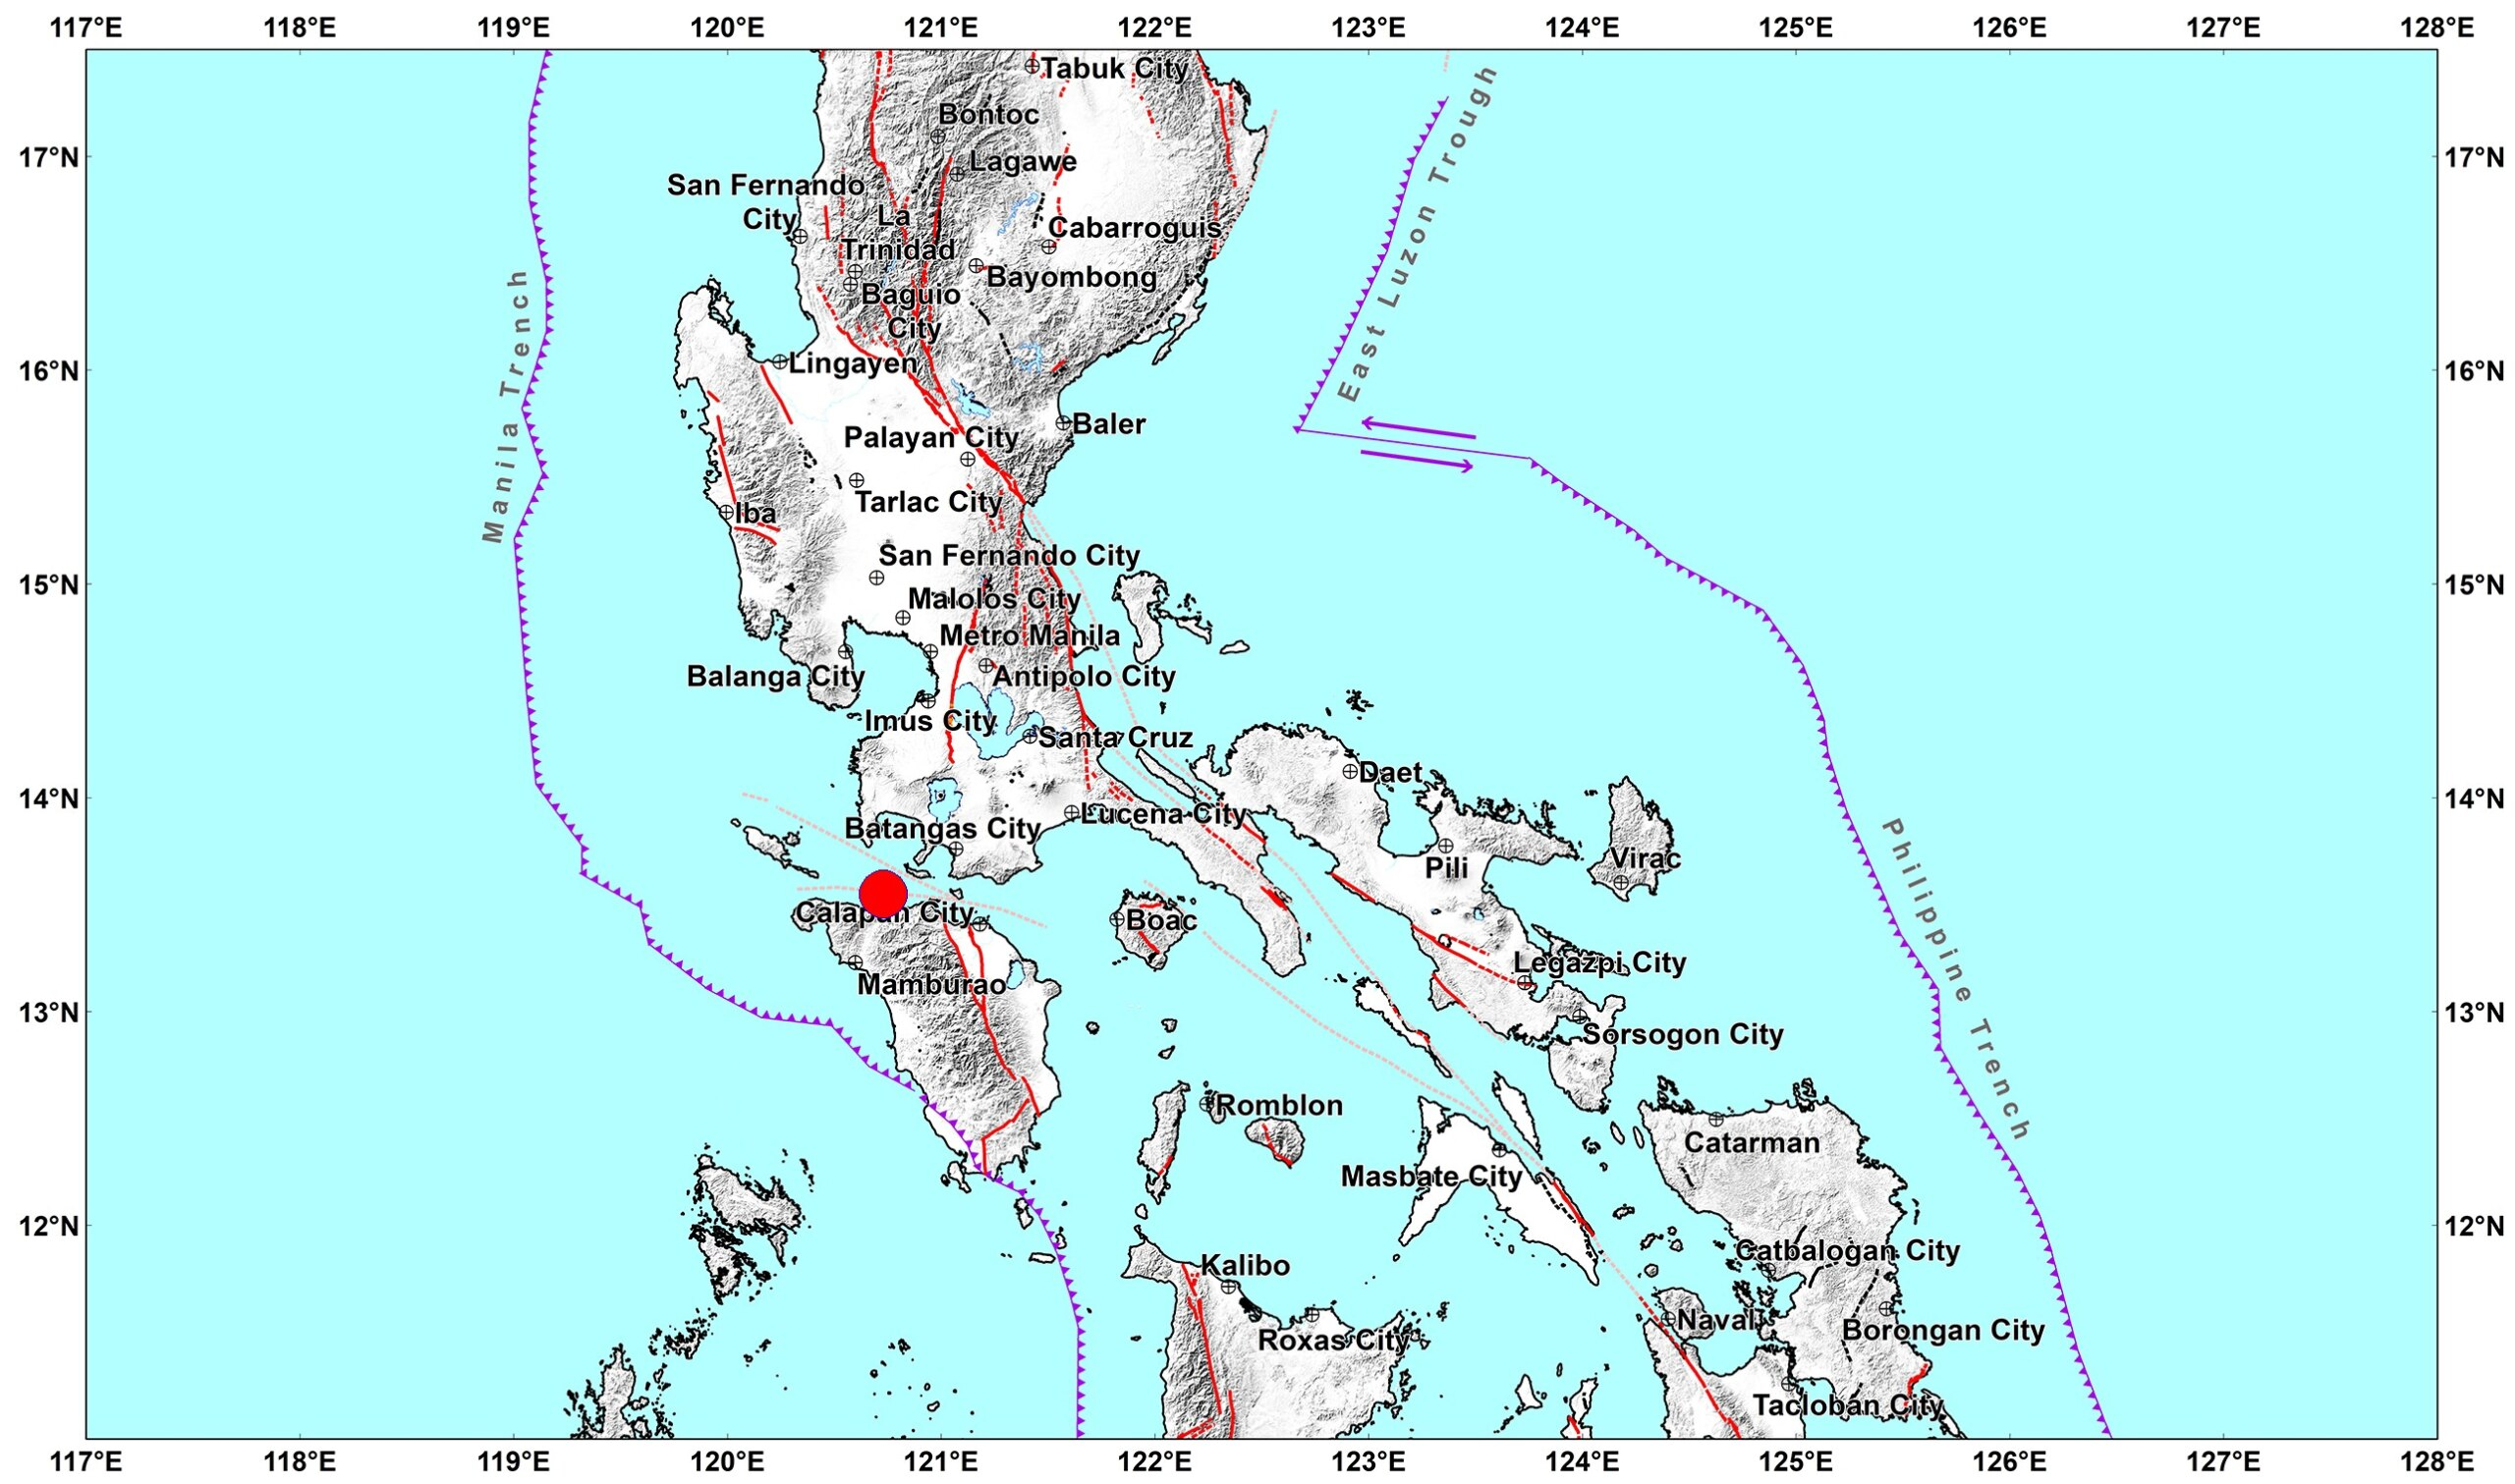 A magnitude 5.8 earthquake hits Abra De Ilog, Occidental Mindoro at 9:09 a.m. today, according to Phivolcs. Aftershocks are expected.